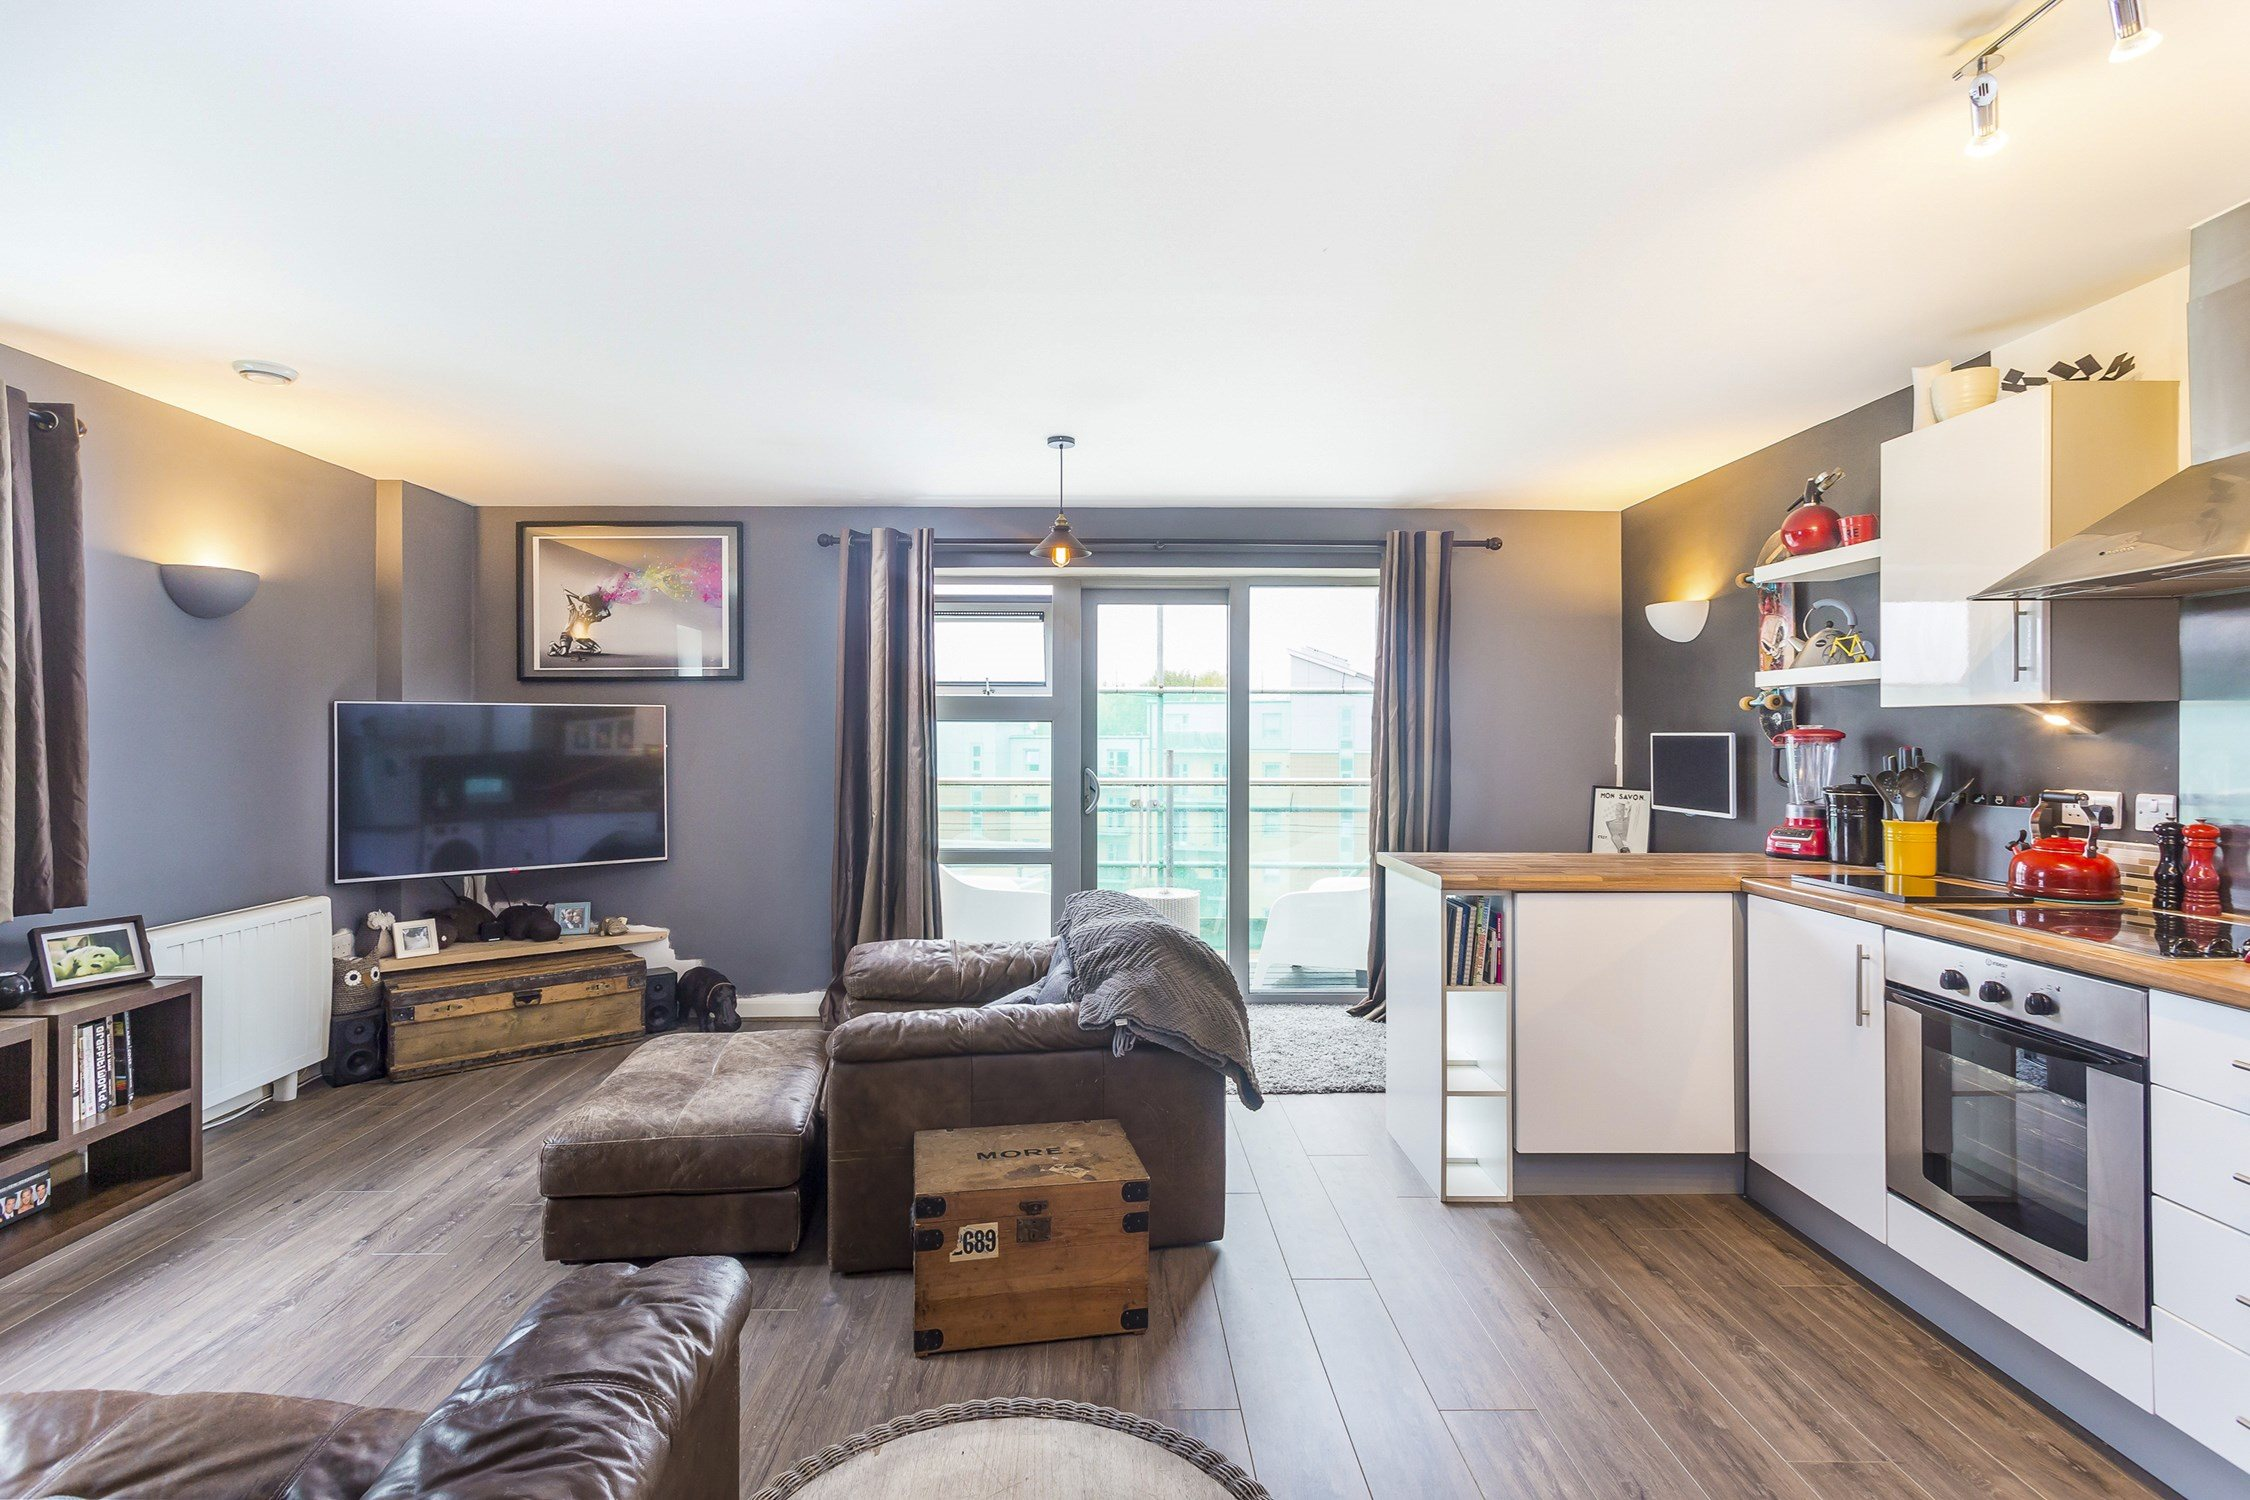 Portico - 1 Bedroom Flat for sale in South Woodford: Queen ...